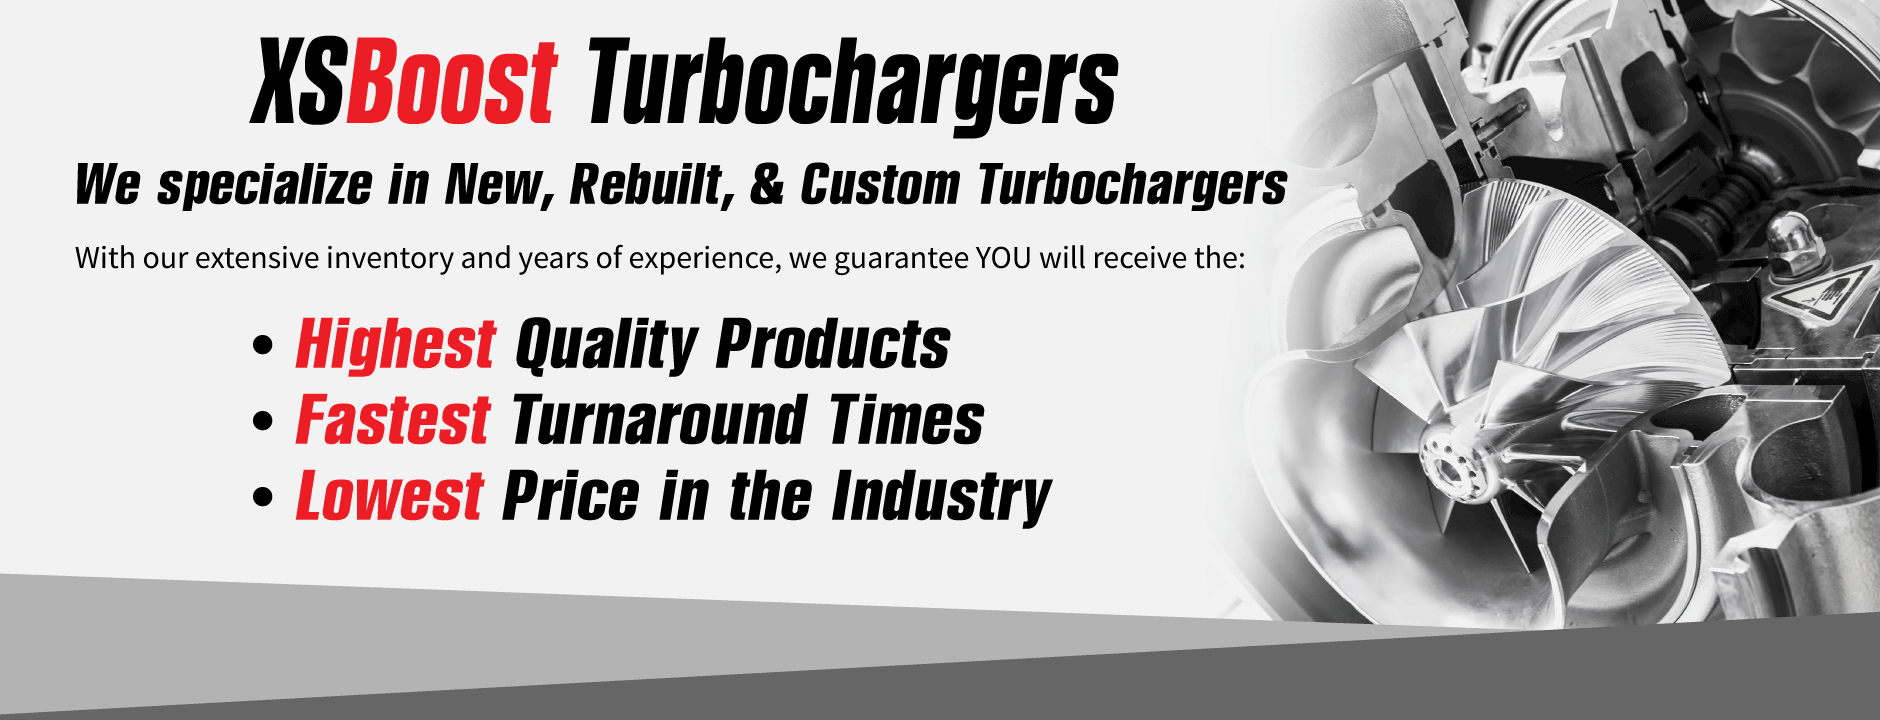 XS Boost Turbochargers